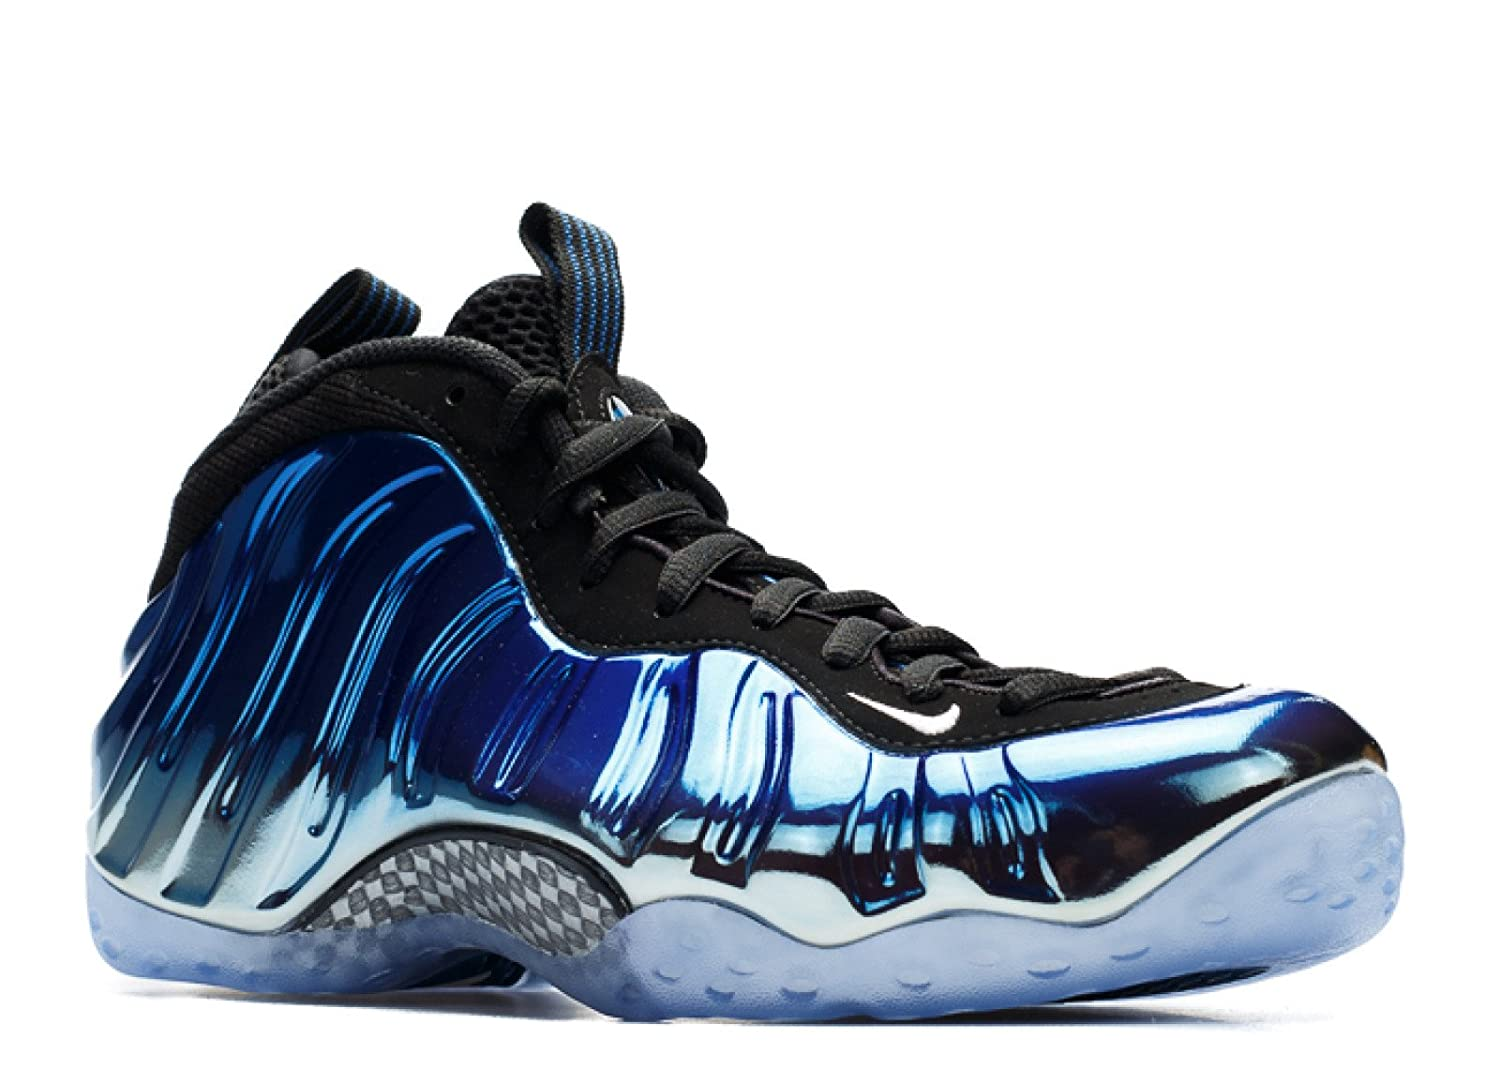 best deals on 36027 40ac6 Amazon.com | NIKE AIR Foamposite ONE PRM 'Blue Mirror' - 575420-008 - Size  12 | Basketball